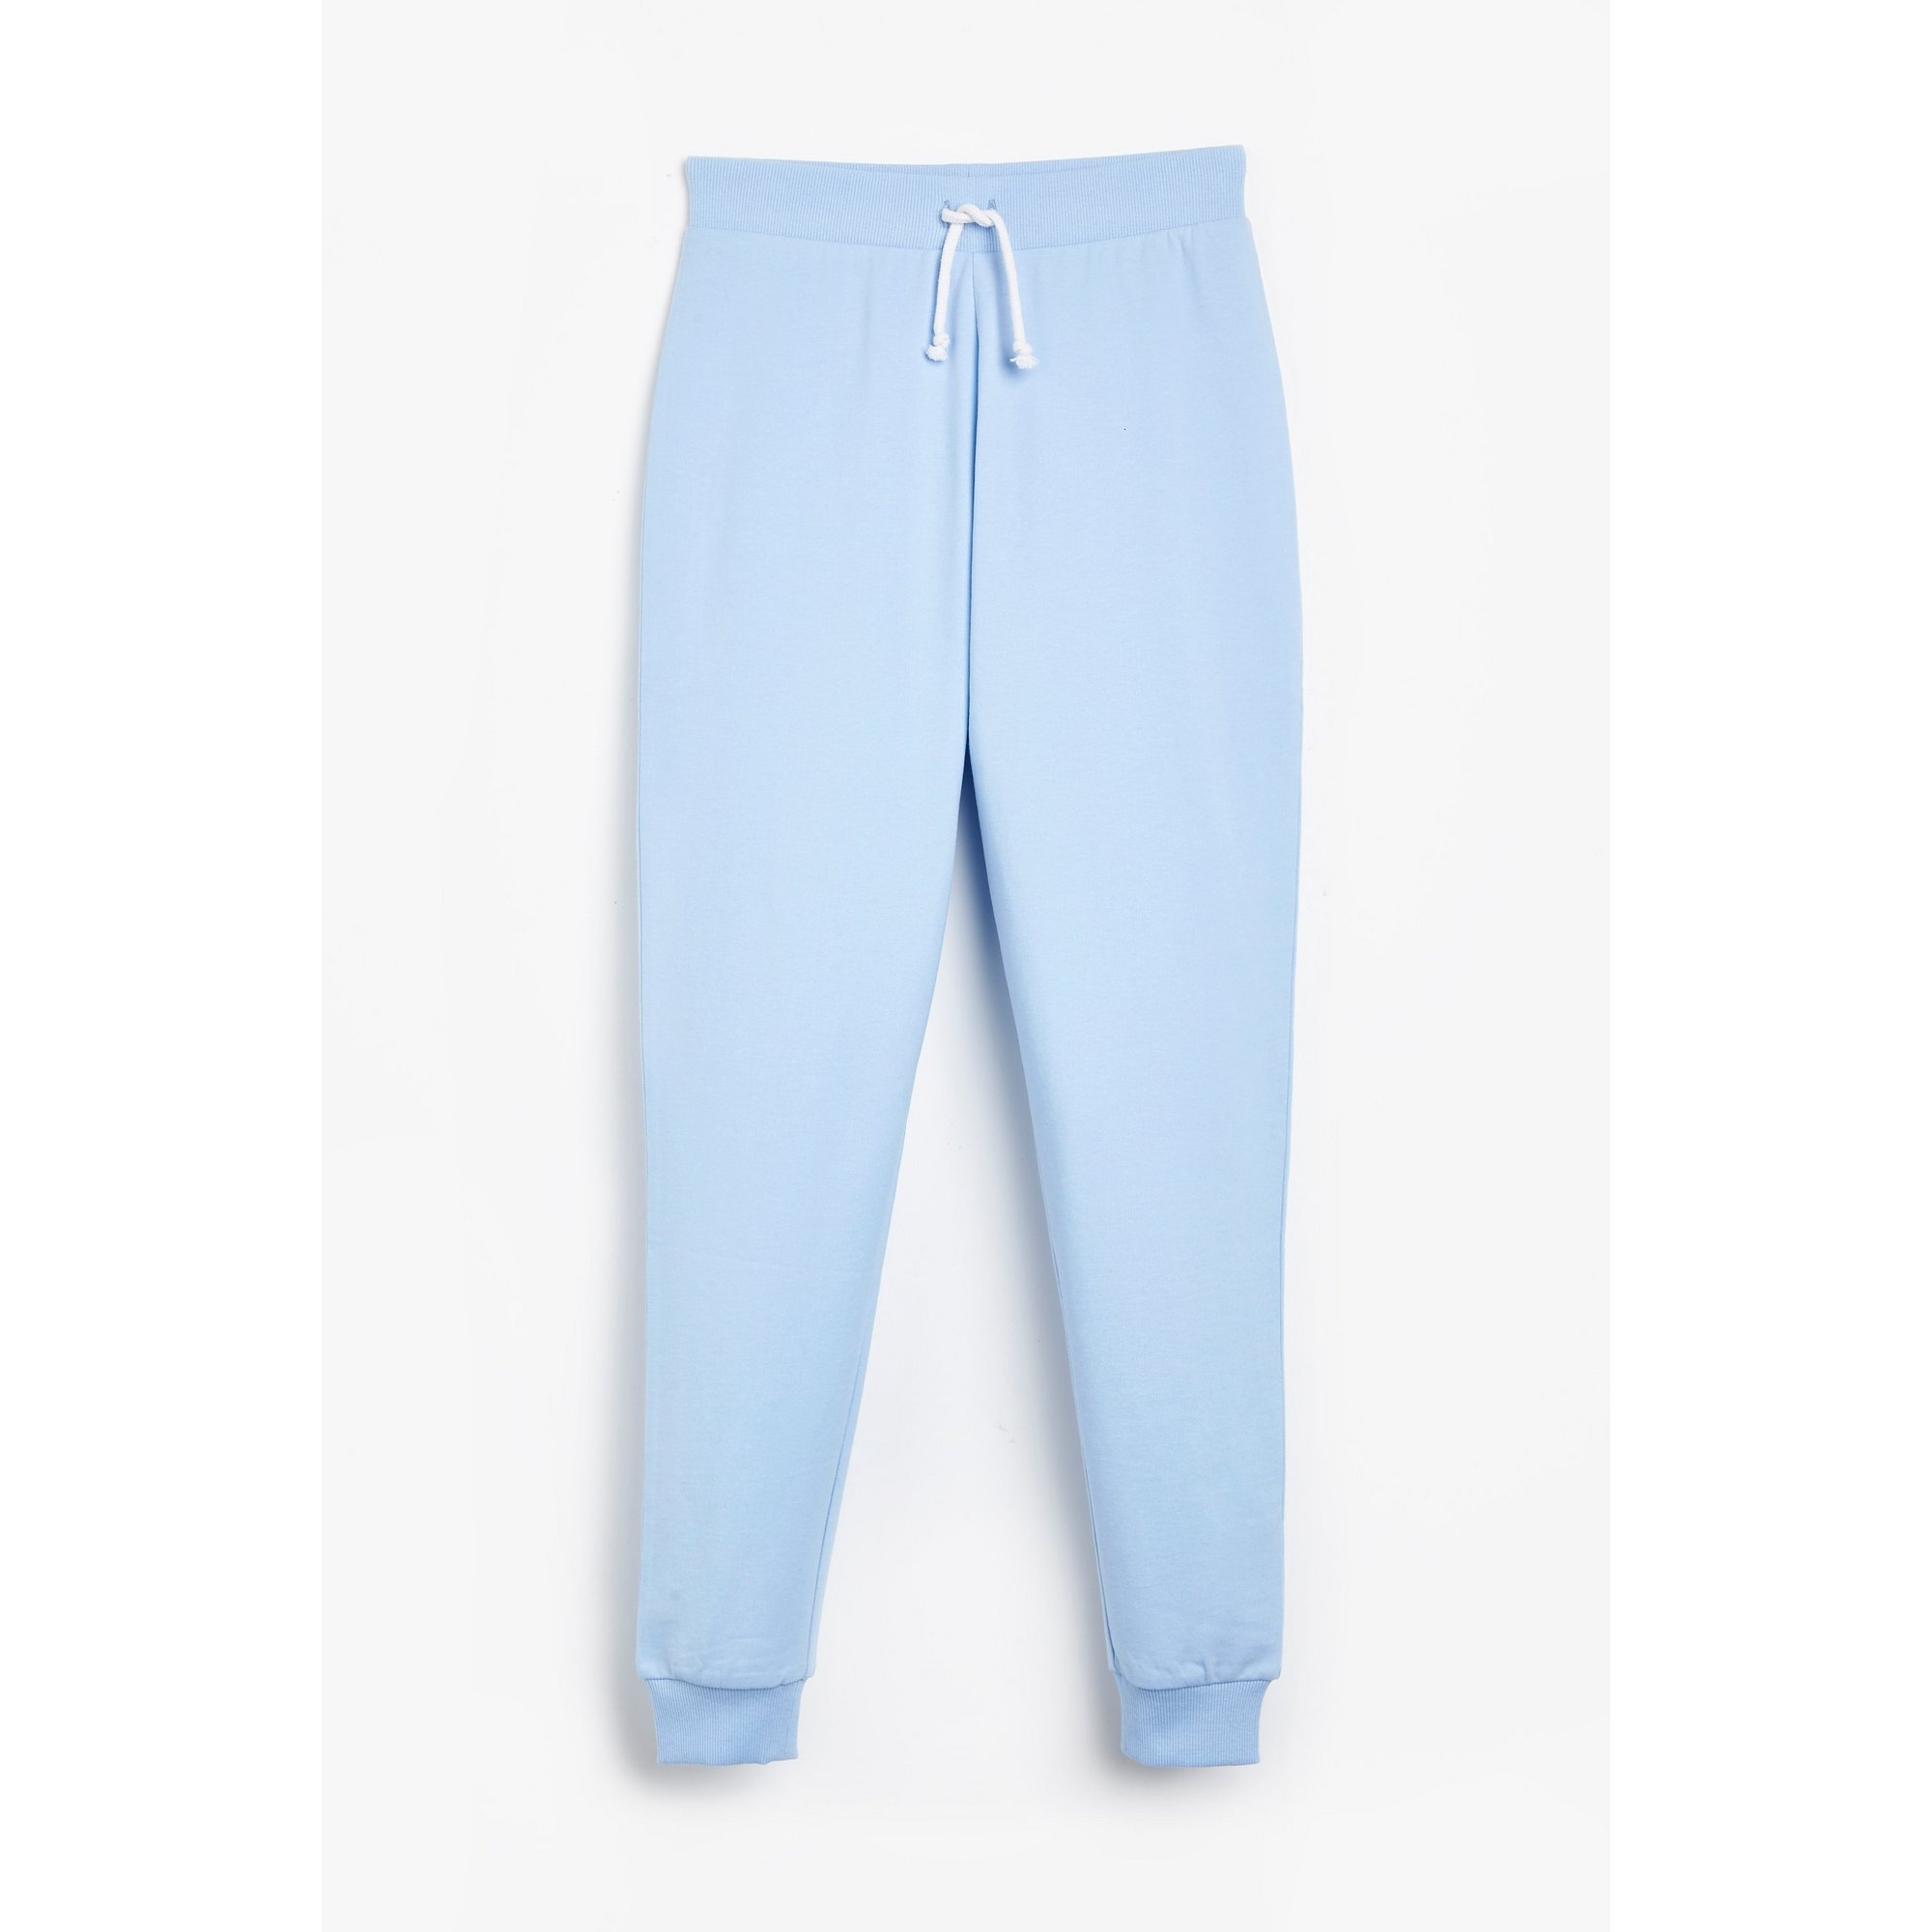 Image of Girls Blue Joggers